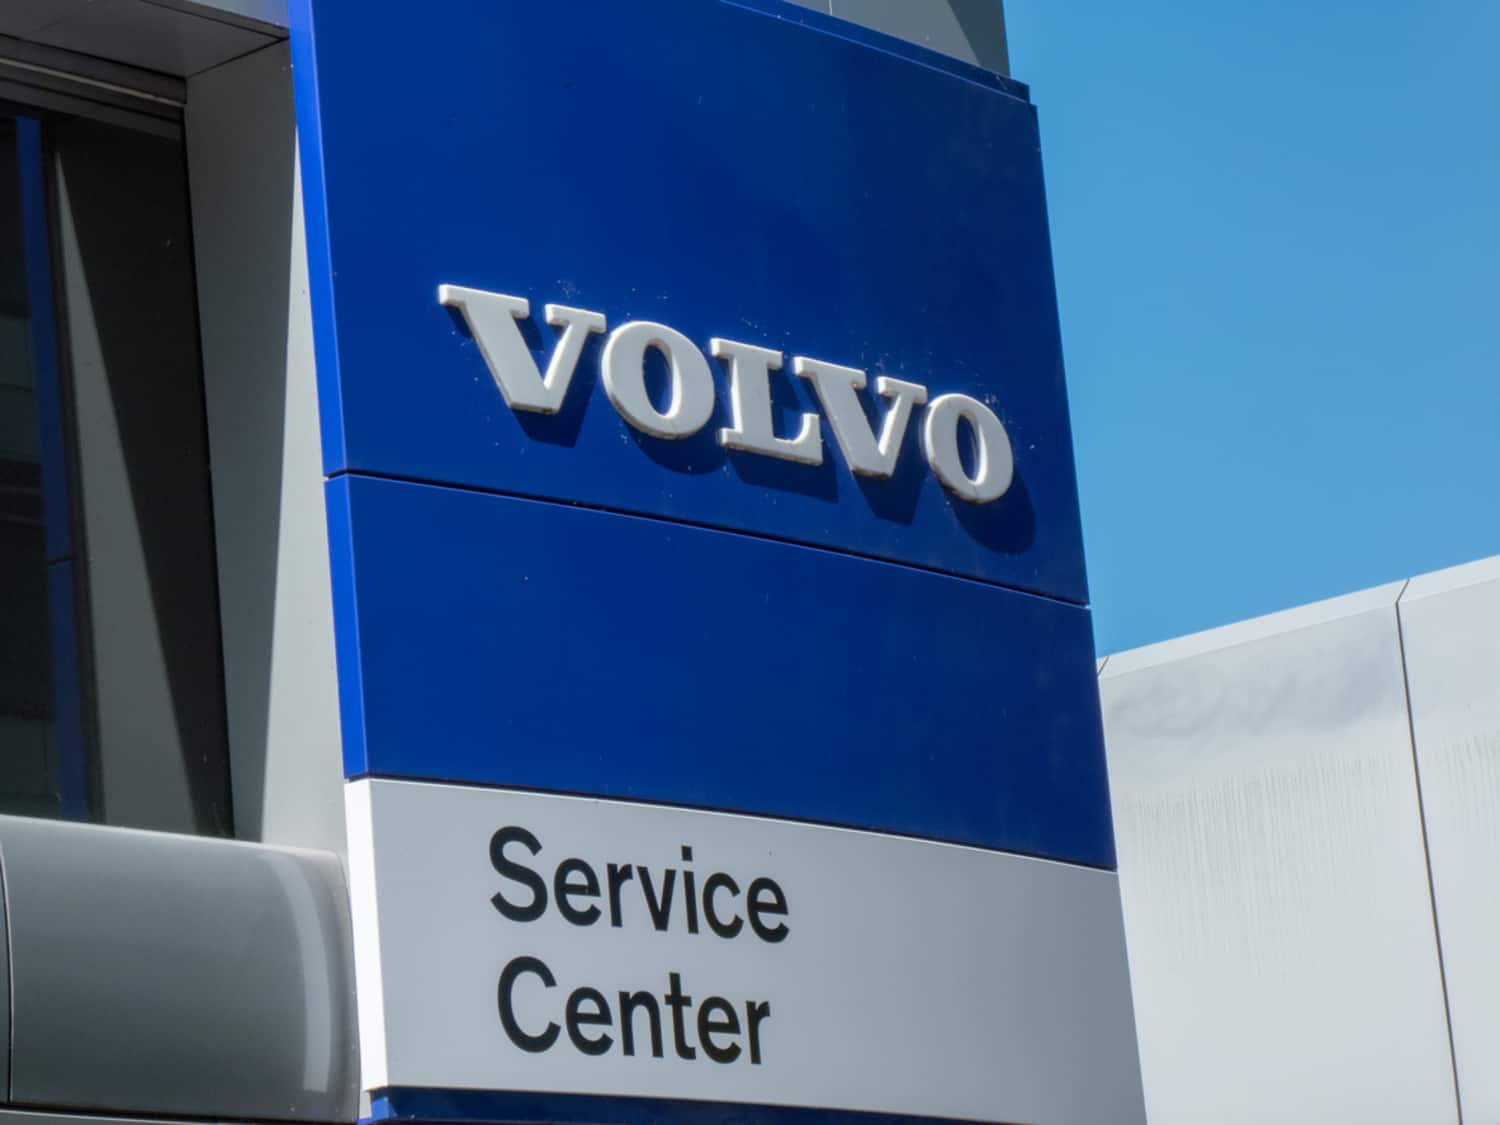 Volvo in mass recall of cars to fix fuel line issue | The